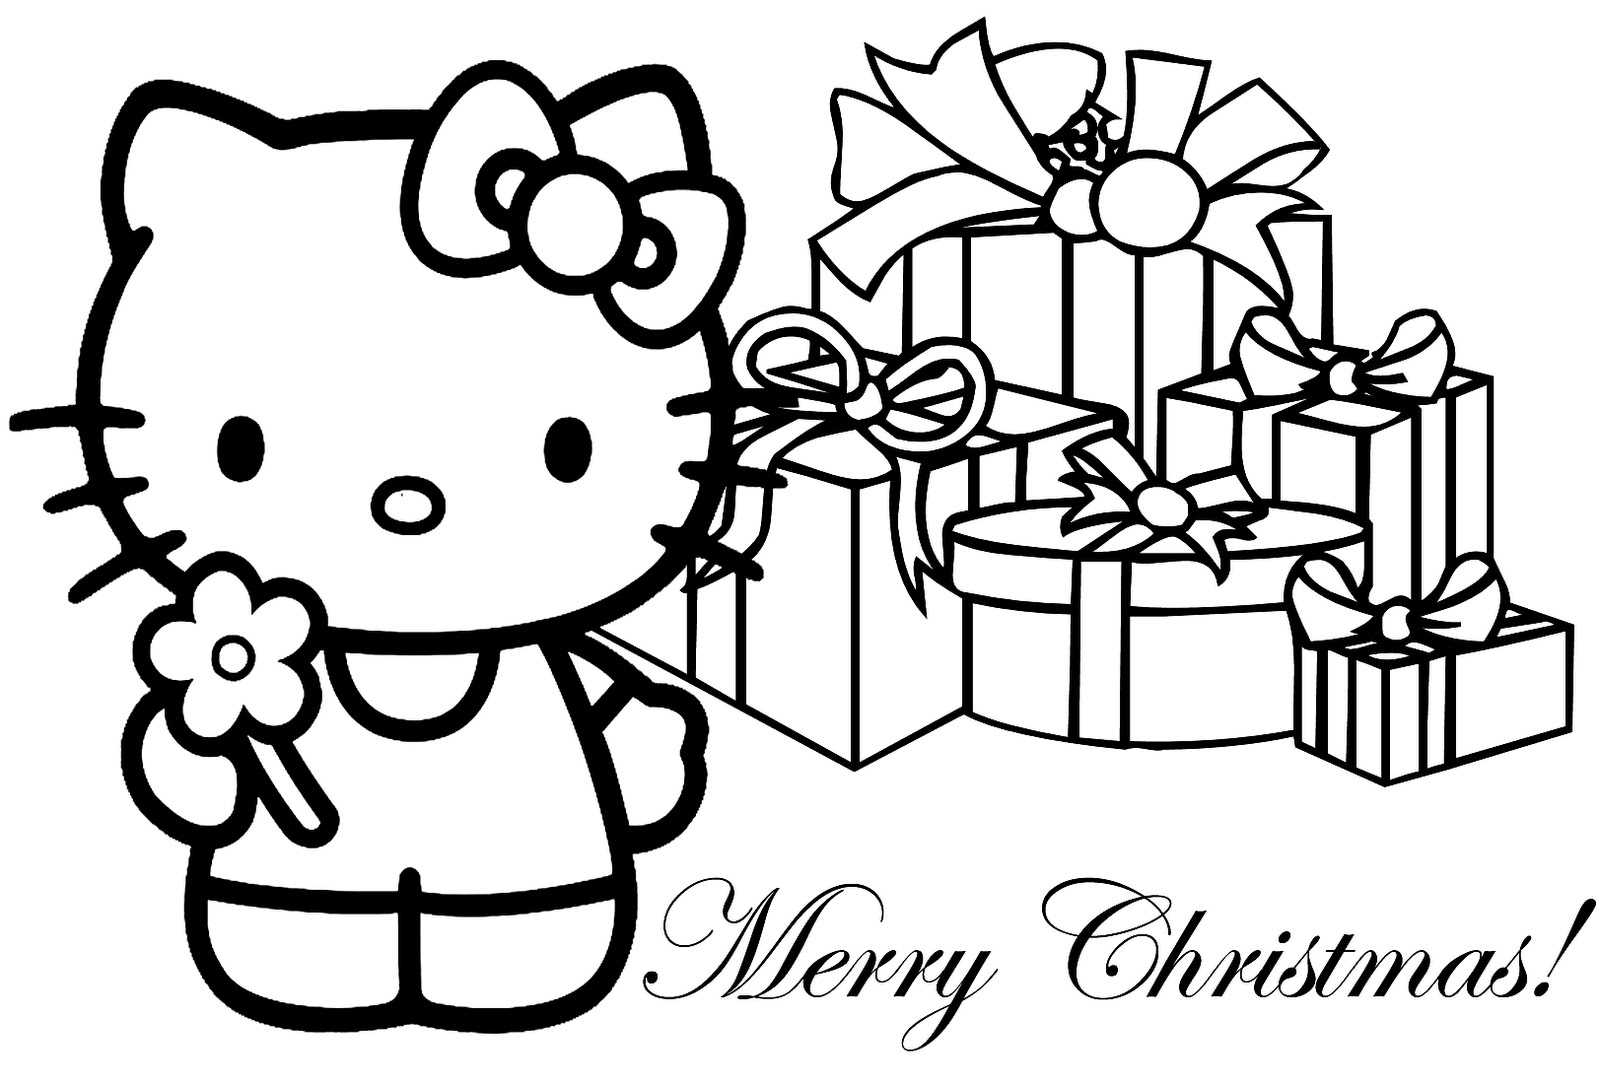 Christmas Coloring Pages Merry-Christmas  - merry christmas coloring pages print